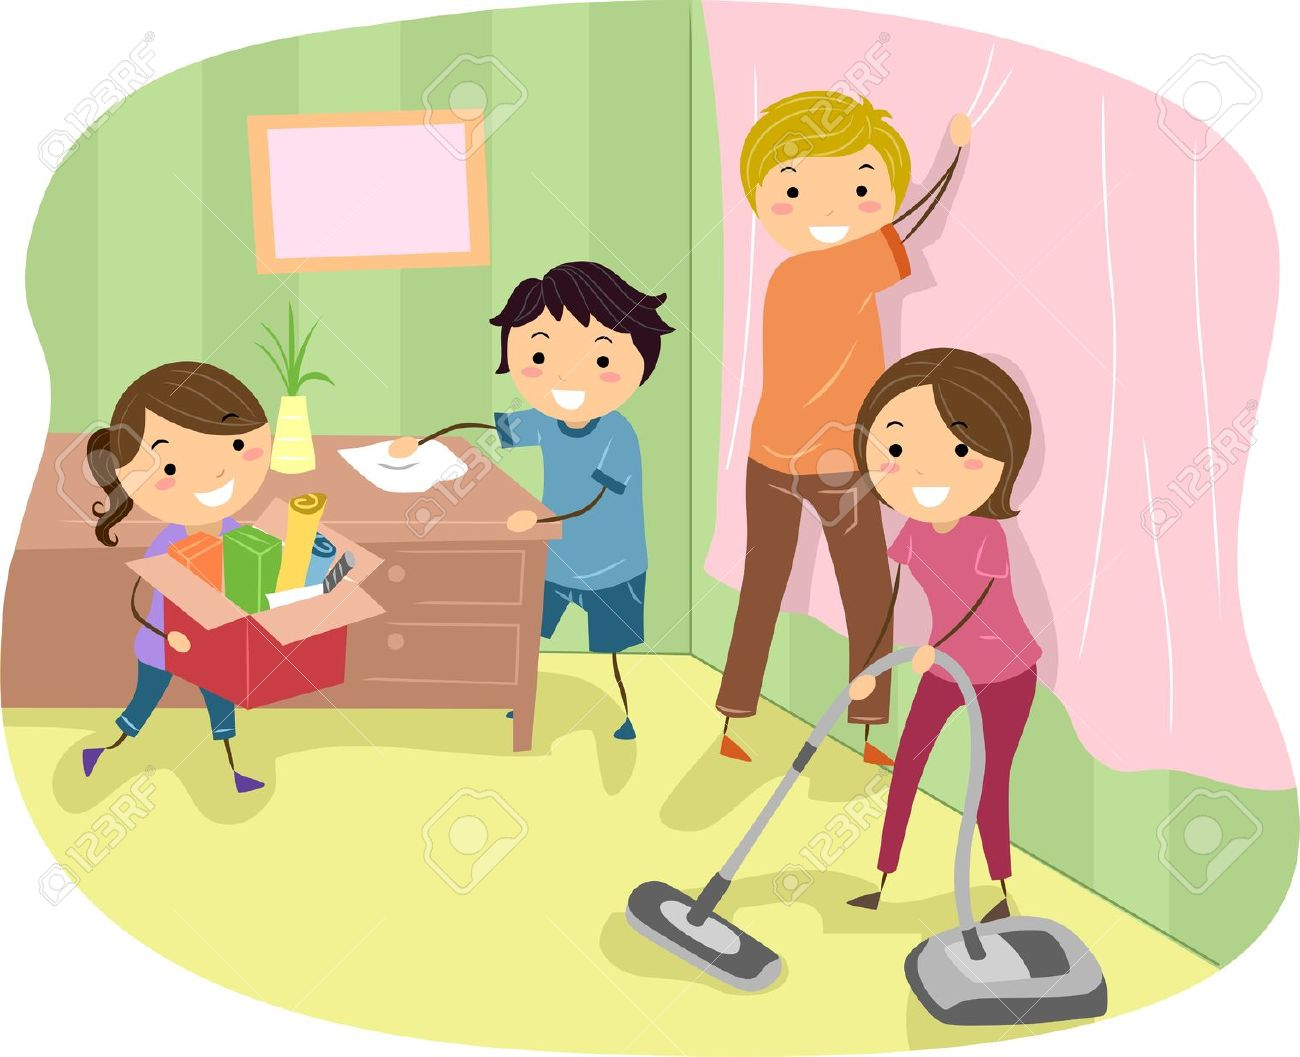 Cleaning the house clipart 10 » Clipart Station.